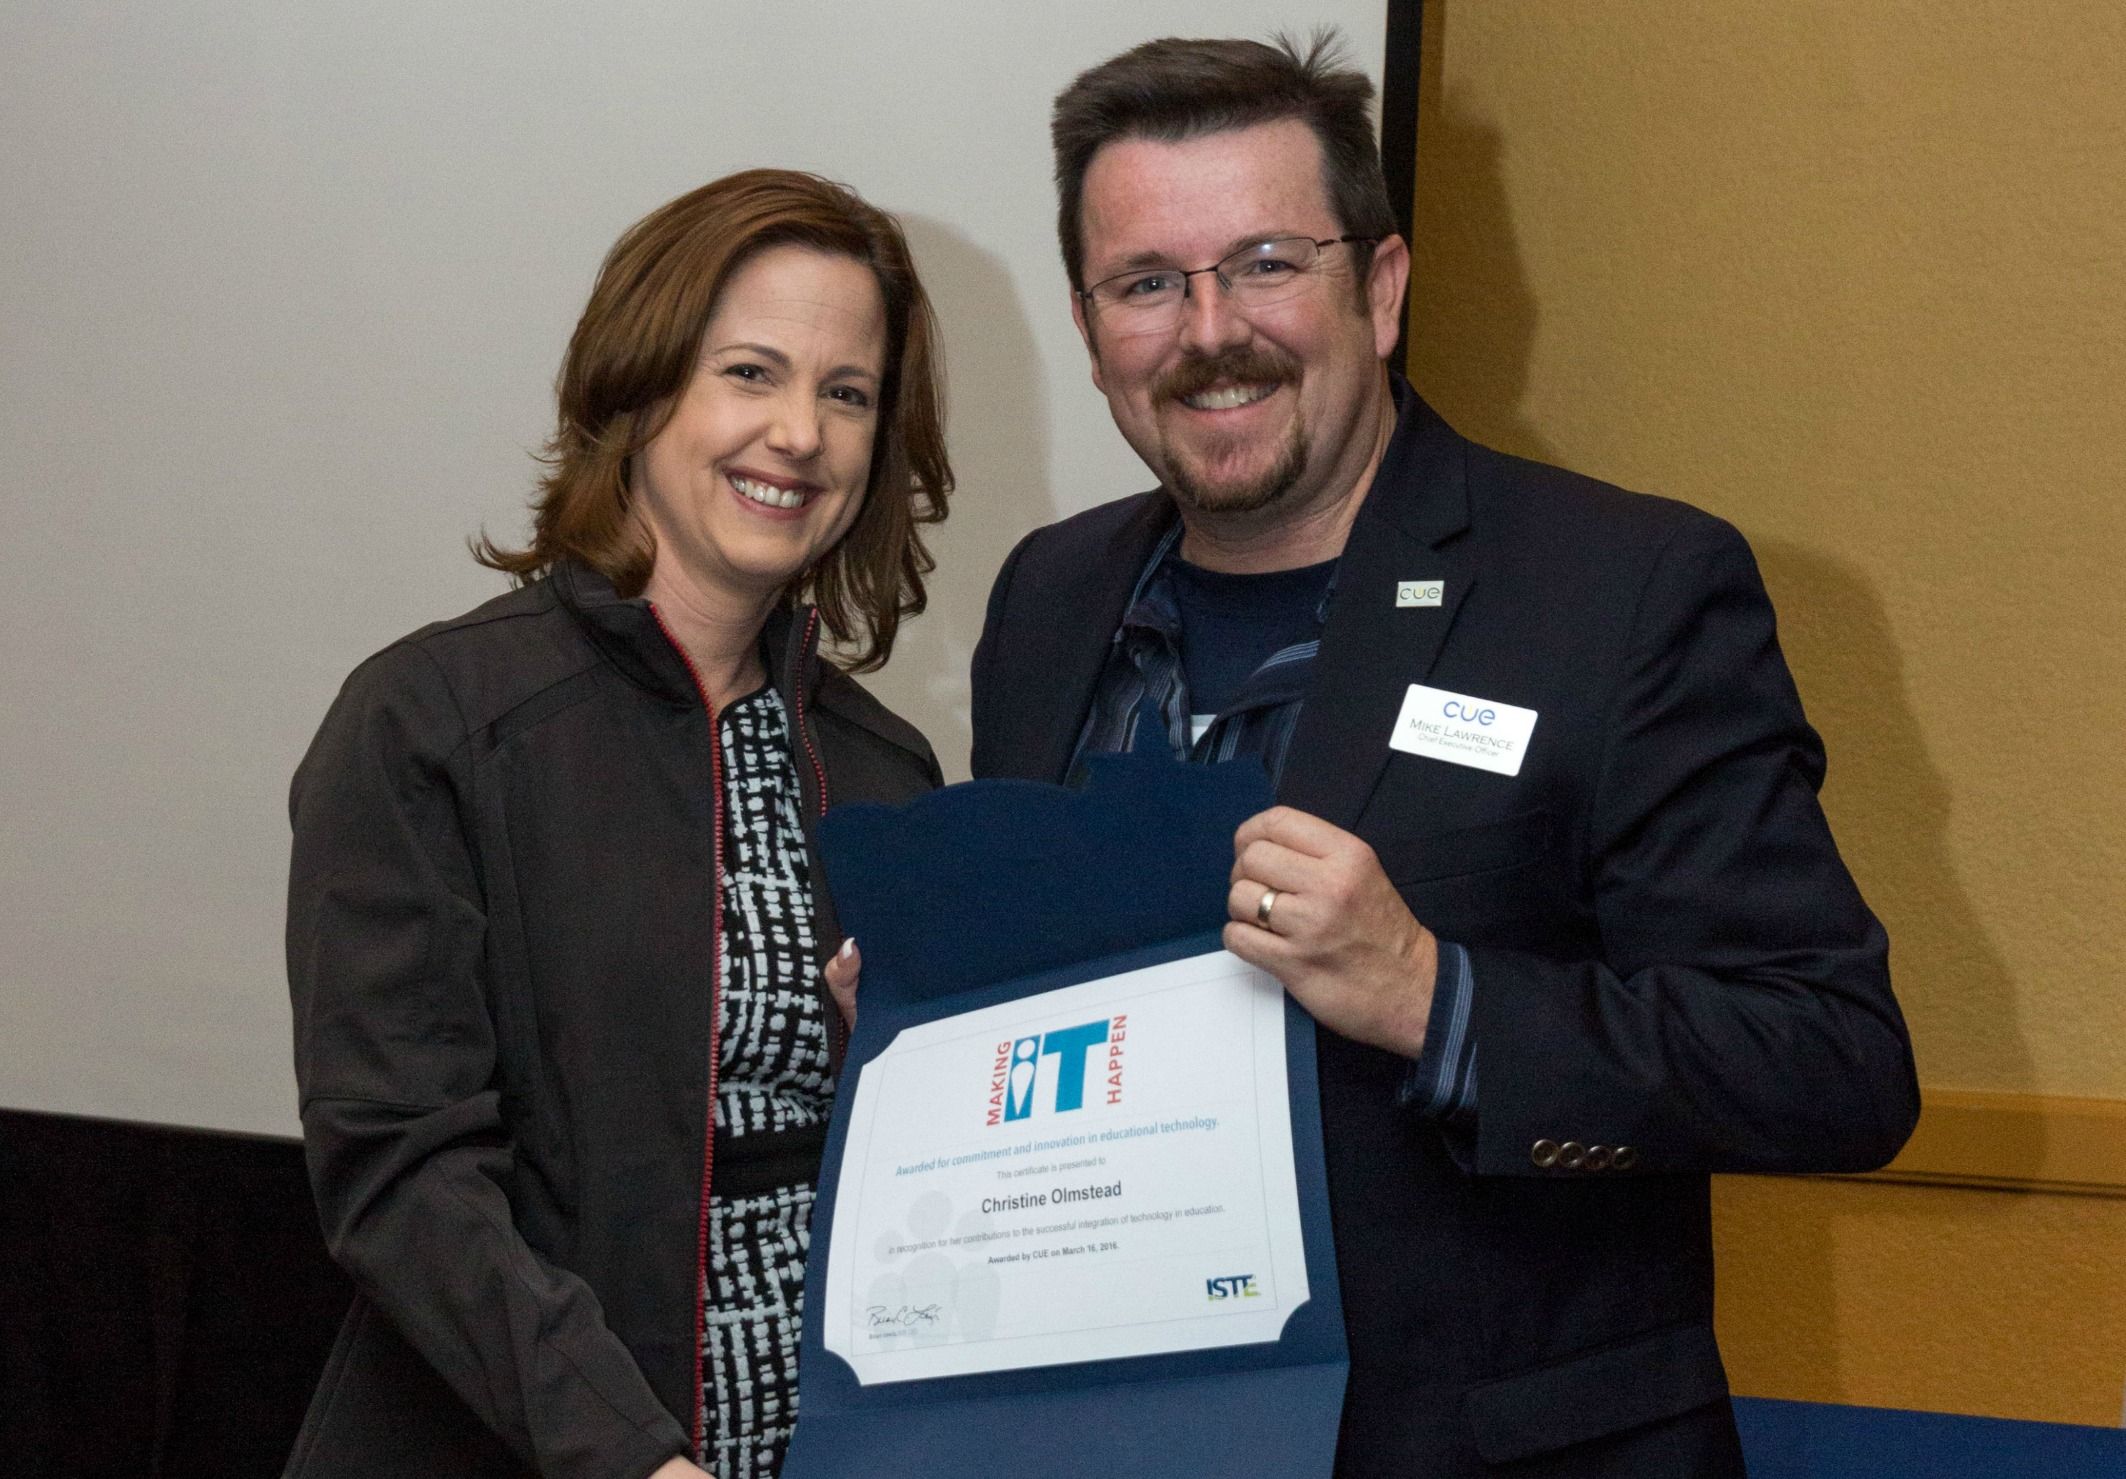 An image of OCDE Assistant Superintendent receiving the Making IT Happen award